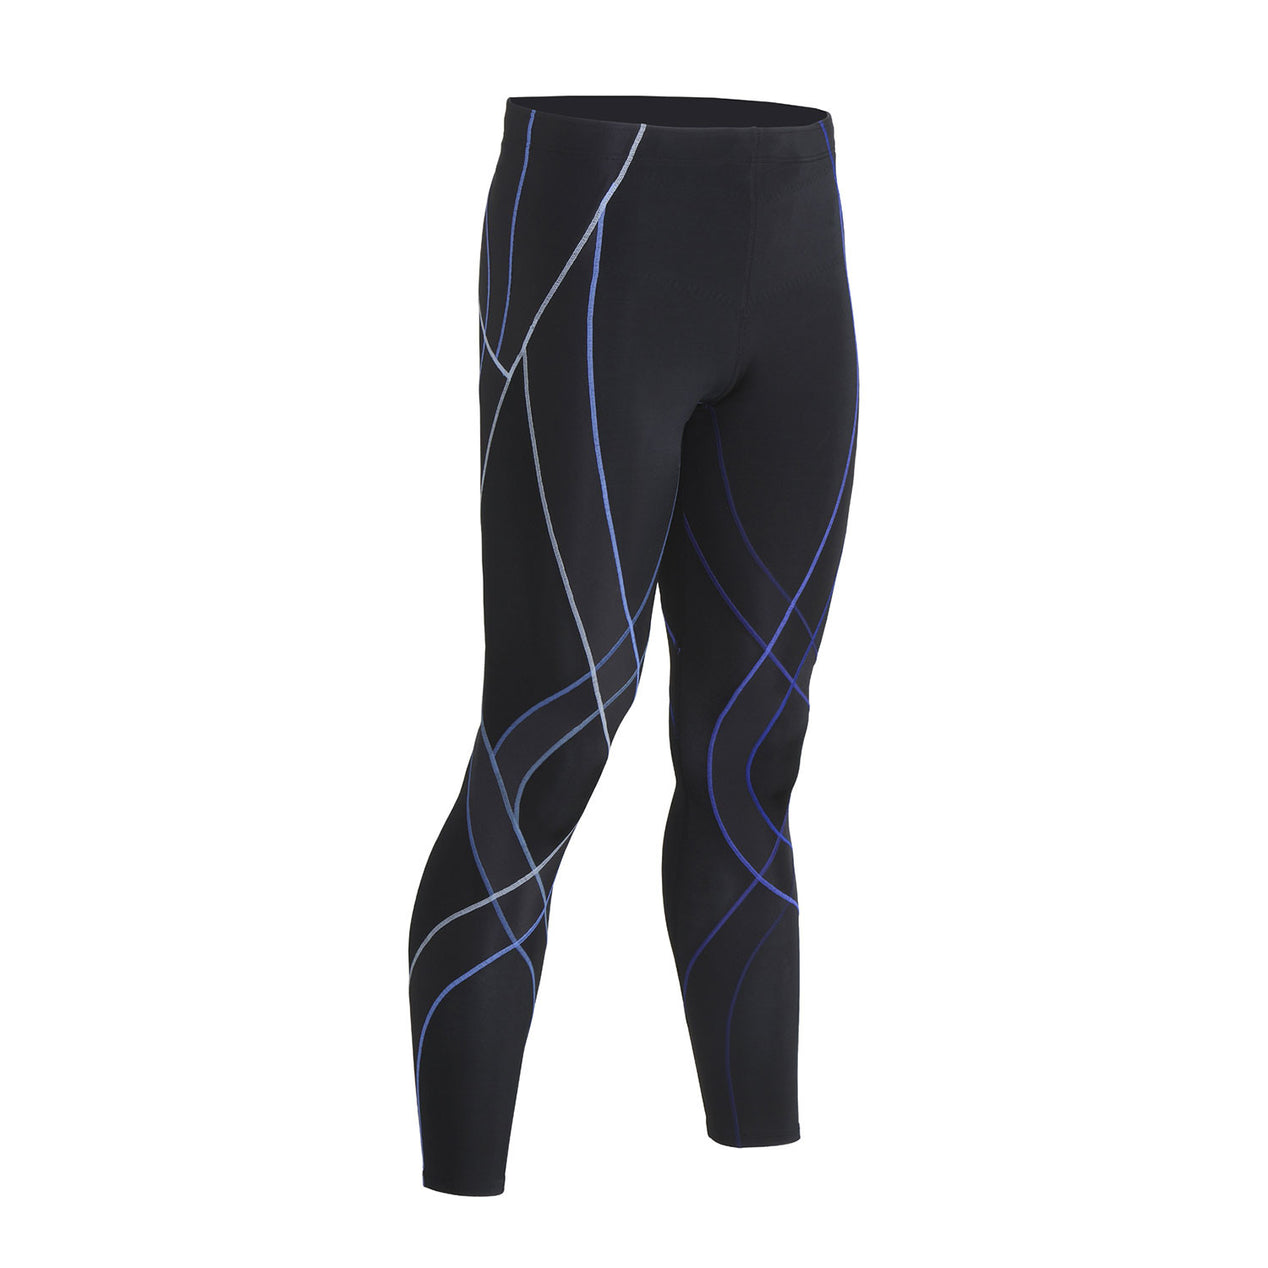 Cw X Conditioning Wear Men s Endurance Generator Tights  2122f3f0a7192